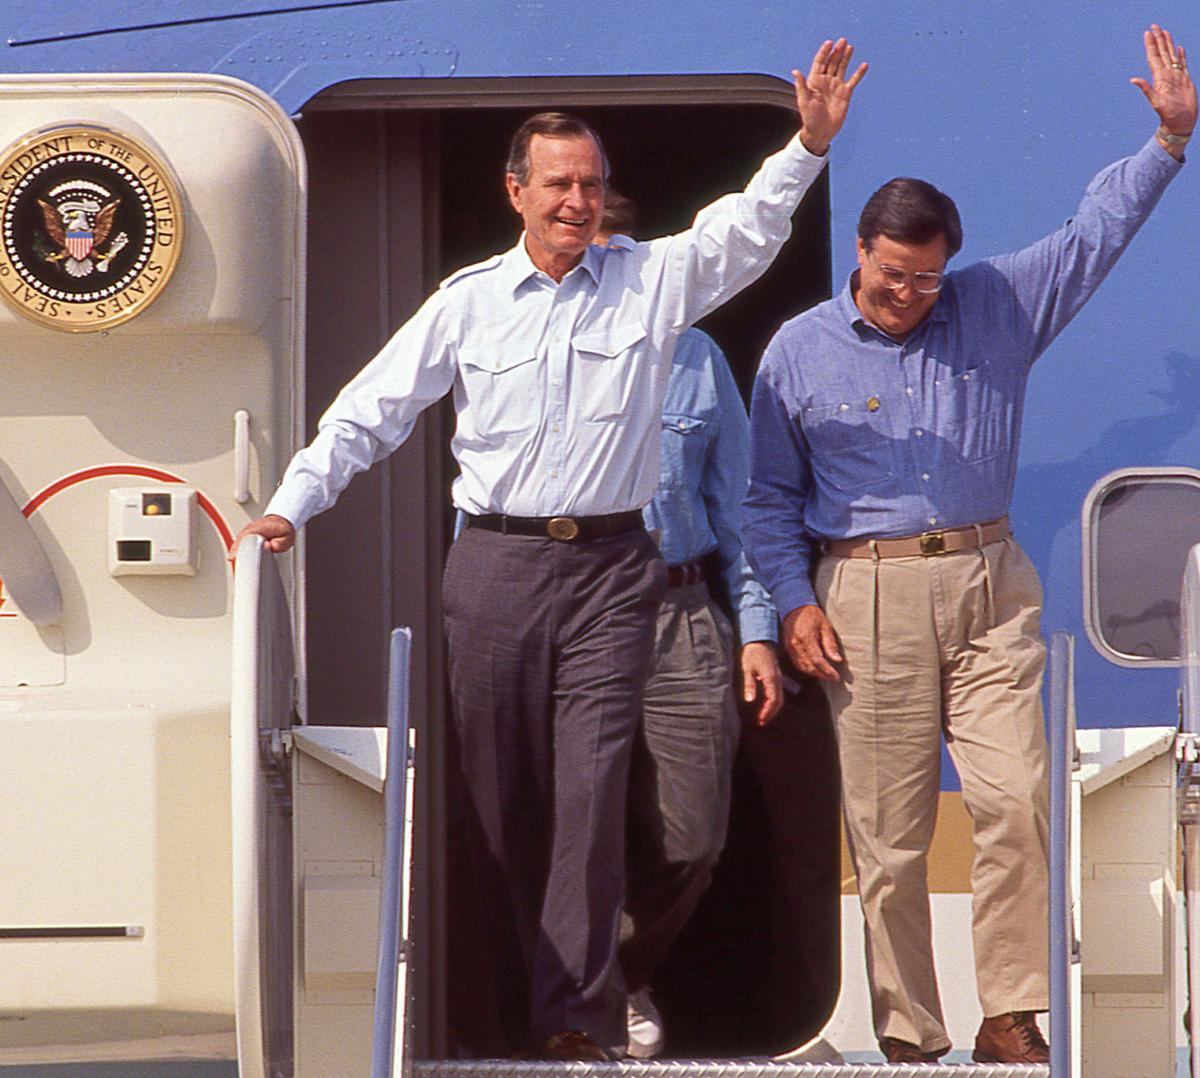 Presidents Day: In the past three decades, Kern County has had its share of presidential visits